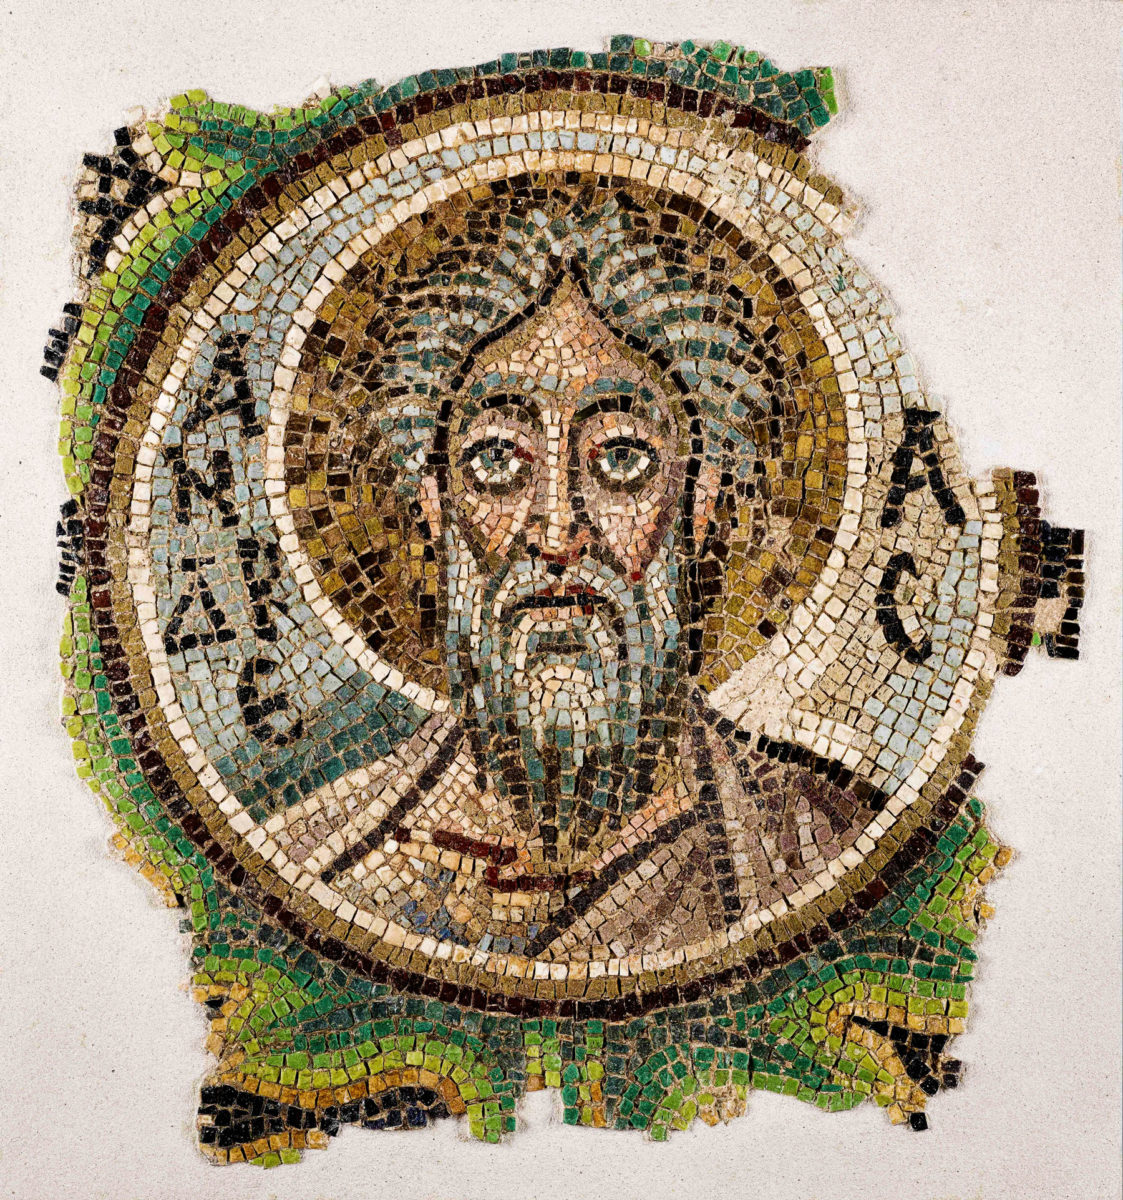 The mosaic of Andrew the Apostle returned to Cyprus comes from the sanctuary arch of the church of Panaghia Kanakaria in Lythrangomi (photo: Archdiocese of Cyprus).